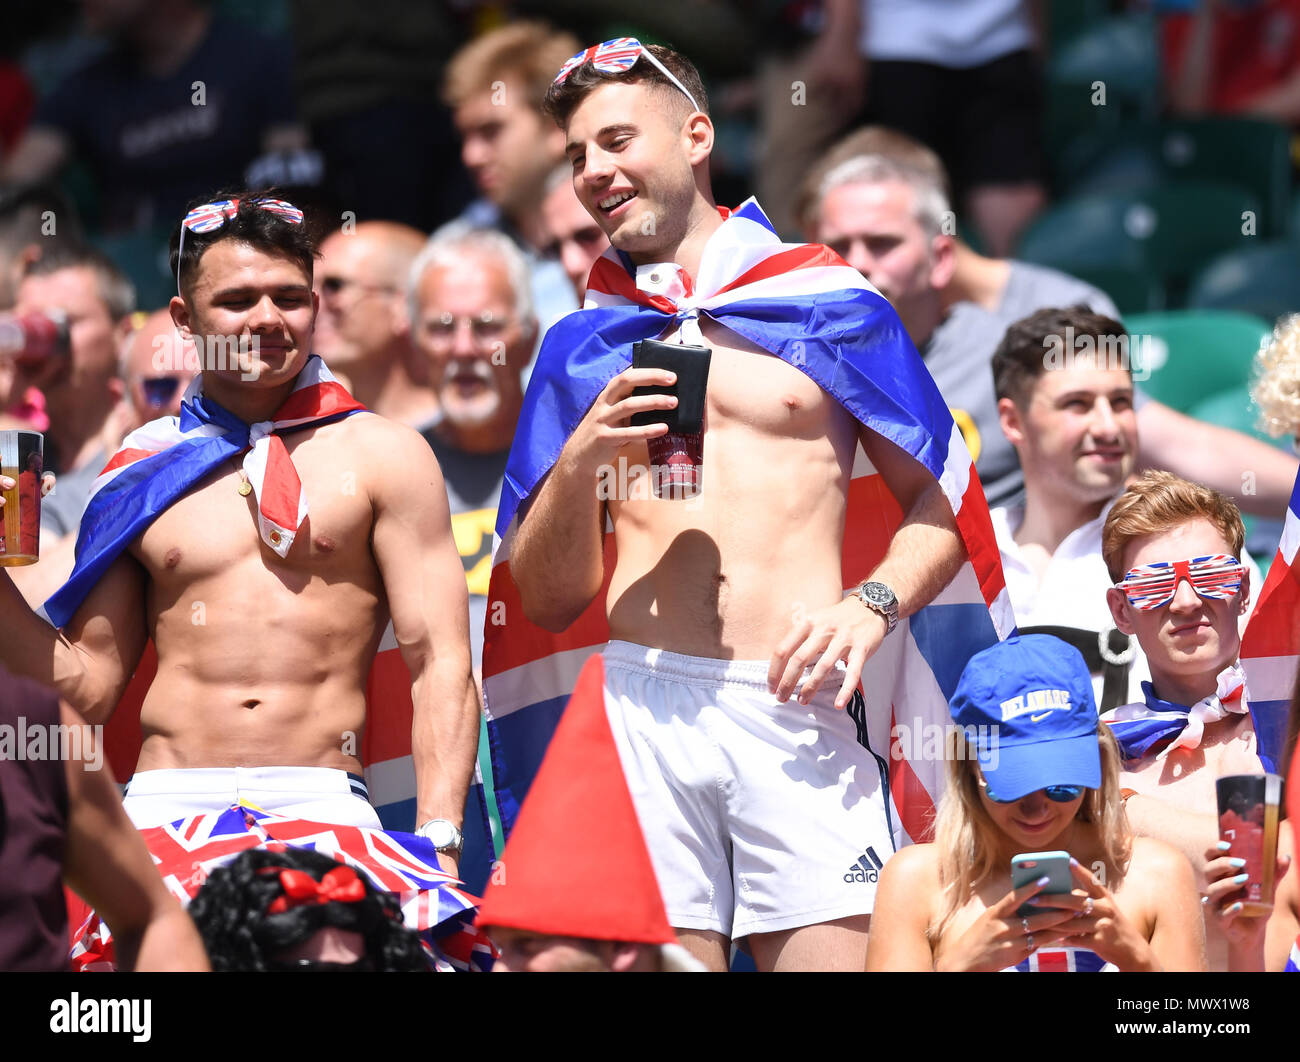 Twickenham Stadium, London, UK. 2nd June, 2018. HSBC World Rugby Sevens Series, England fans show their support for their team Credit: Action Plus Sports/Alamy Live News Stock Photo